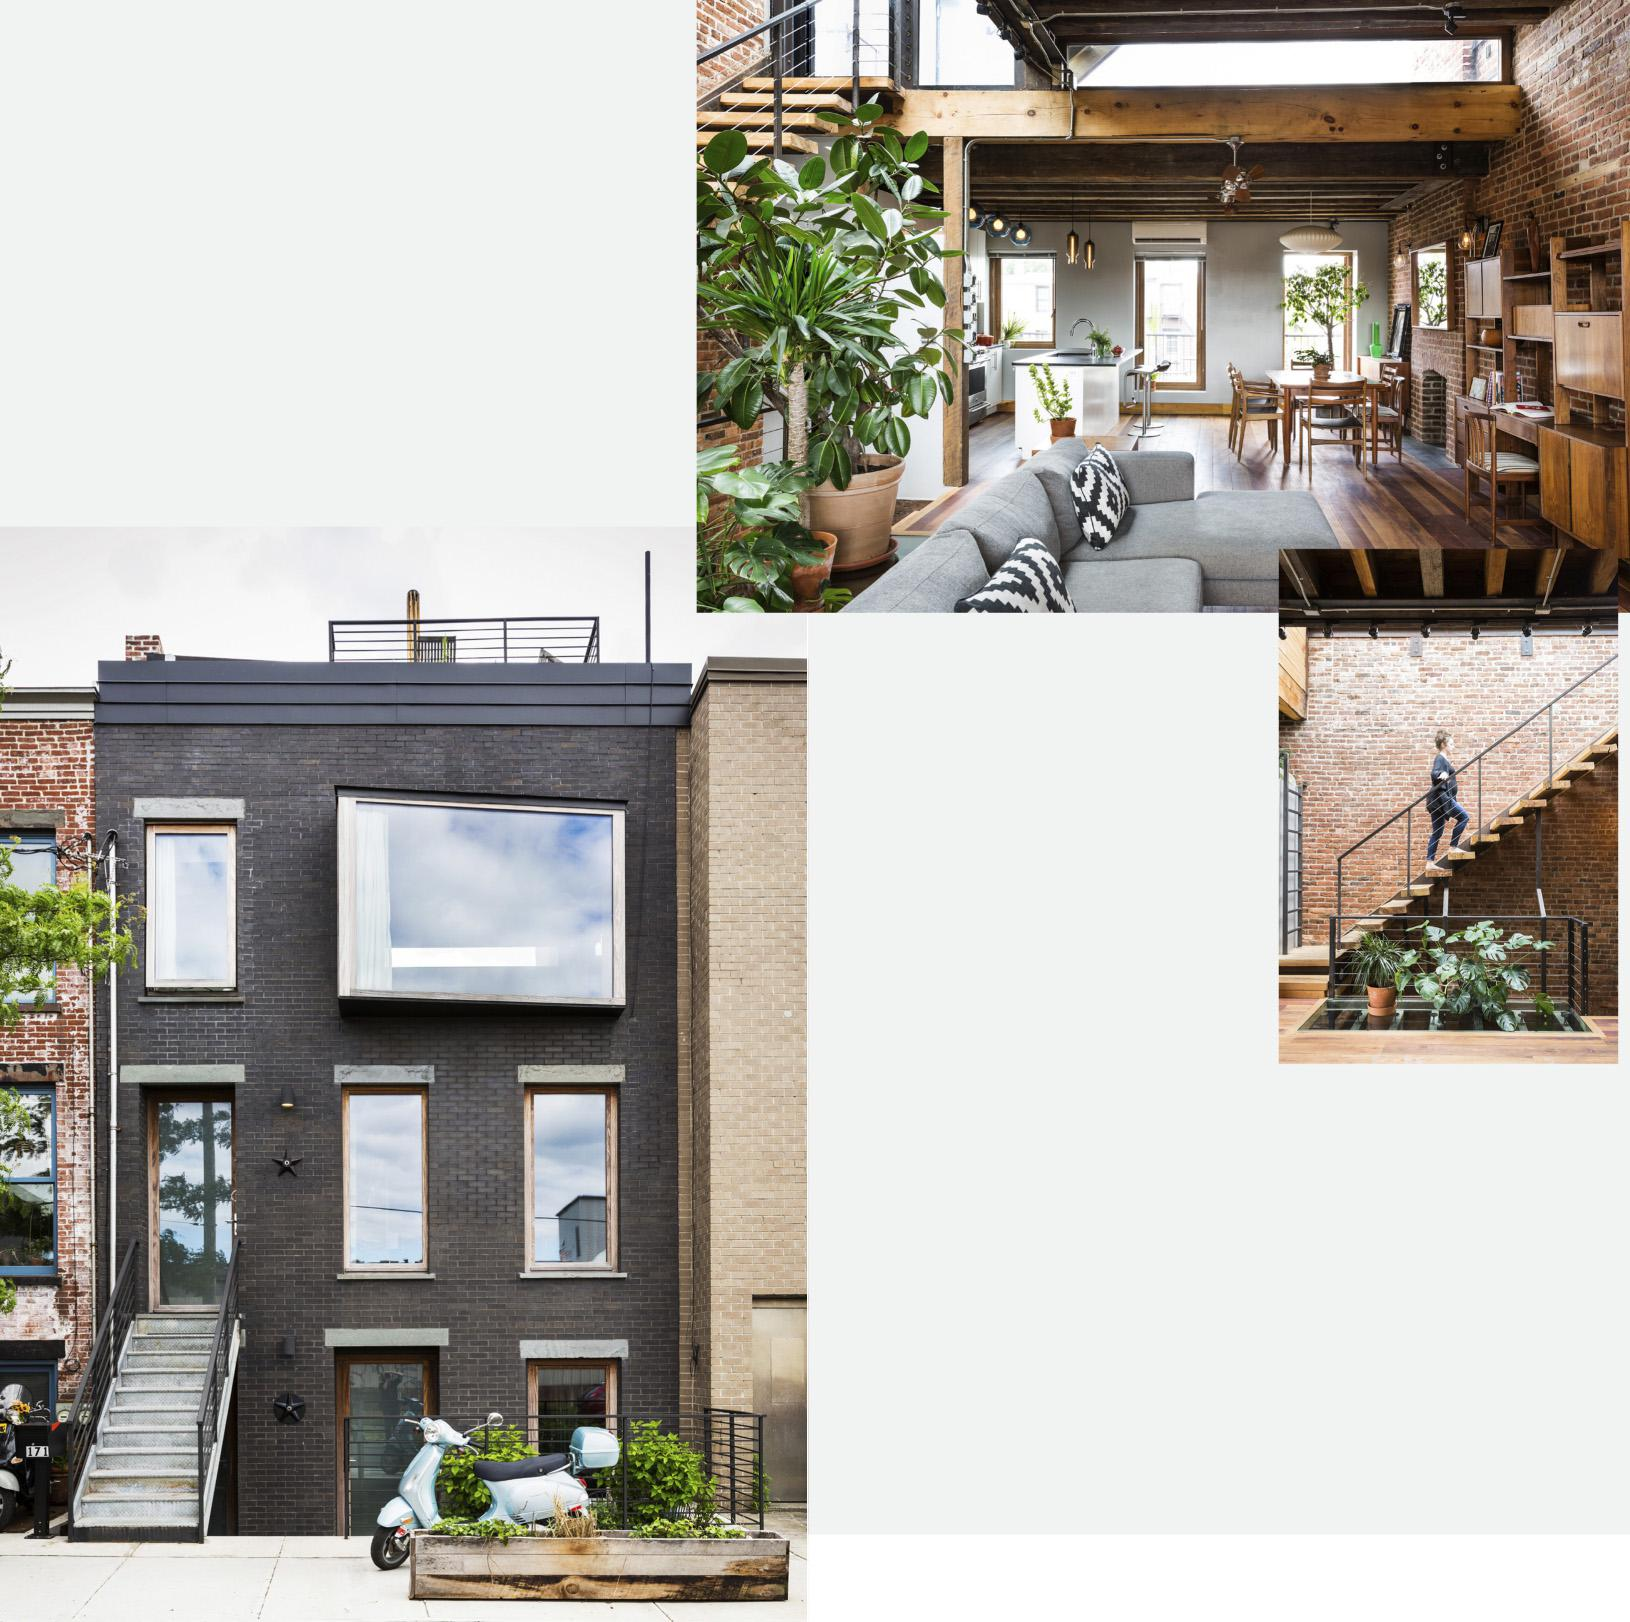 Architect Allison Reeves was renovating a townhome in Red Hook when she  discovered that the existing redbrick facade was falling apart.